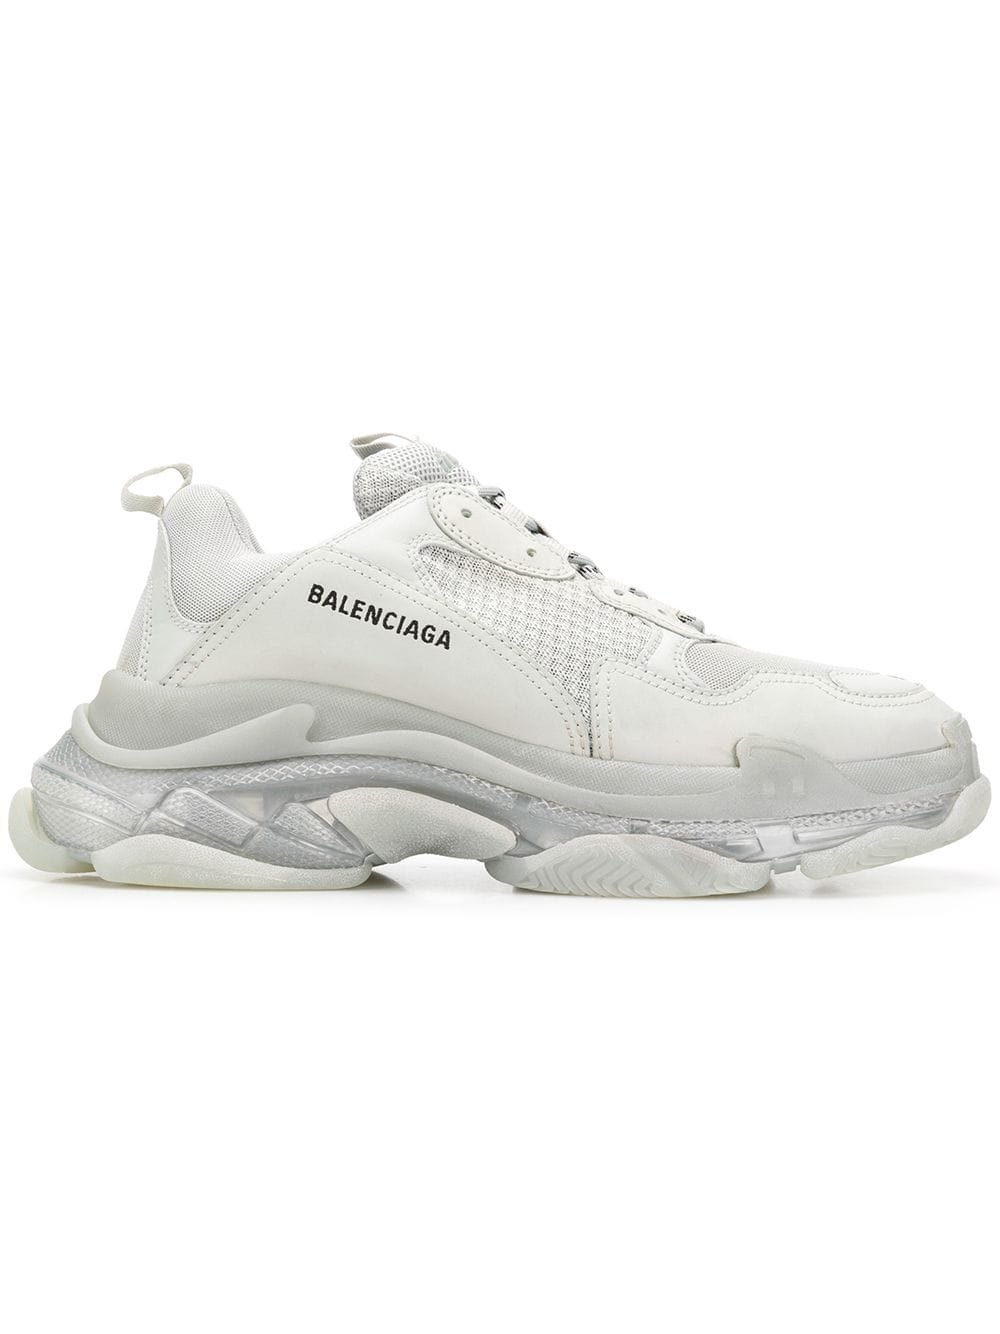 Balenciaga Triple S Clear Sole £695 - Buy Online - Mobile Friendly, Fast Delivery